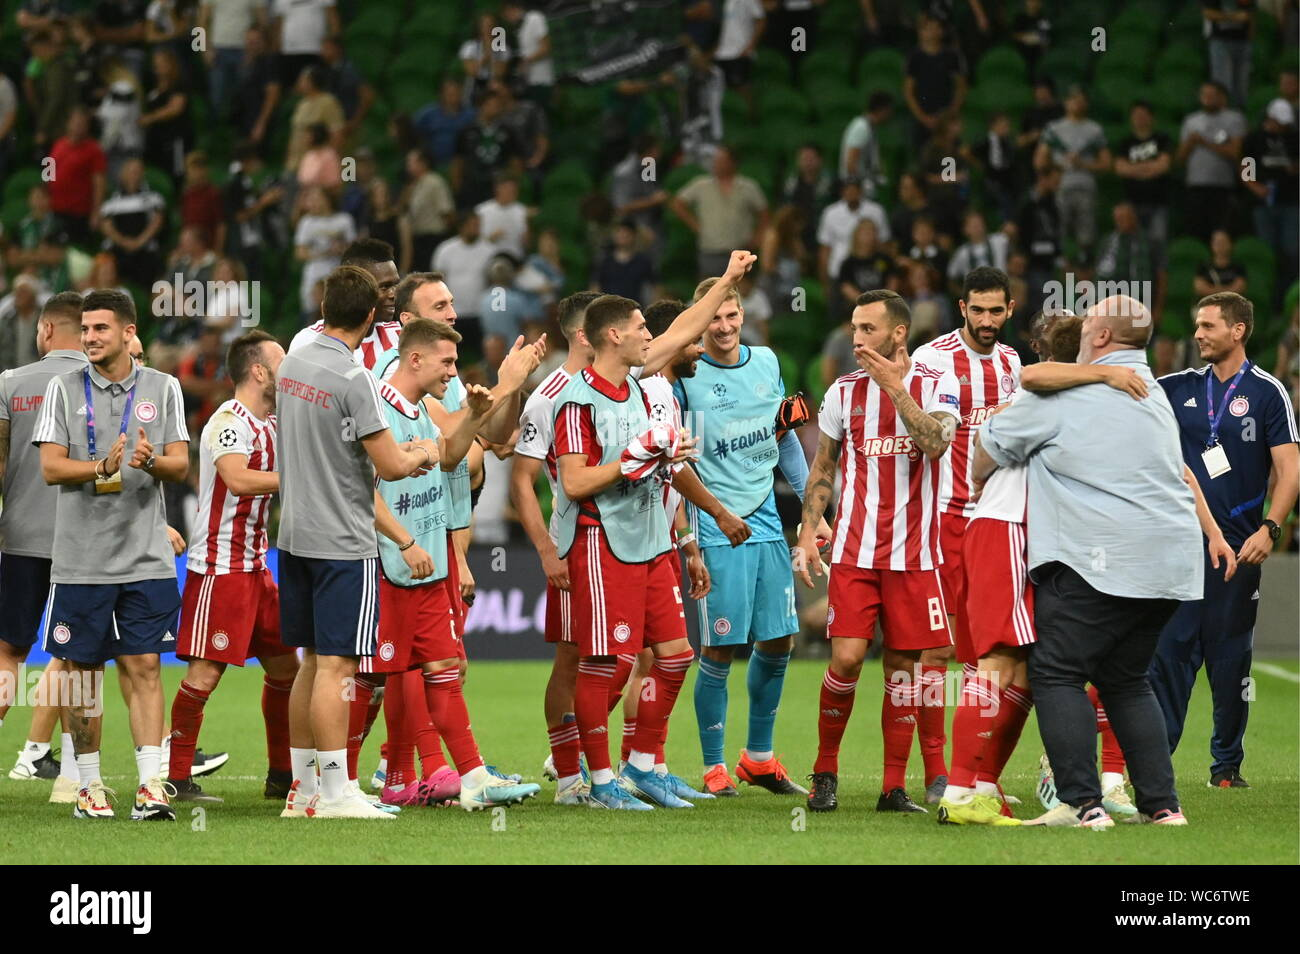 Krasnodar Russia 27th Aug 2019 Krasnodar Russia August 27 2019 Olympiacos Fc Players And Coaching Staff Celebrate Their Victory In The Senond Leg Of The 2019 20 Uefa Champions League Play Off Football